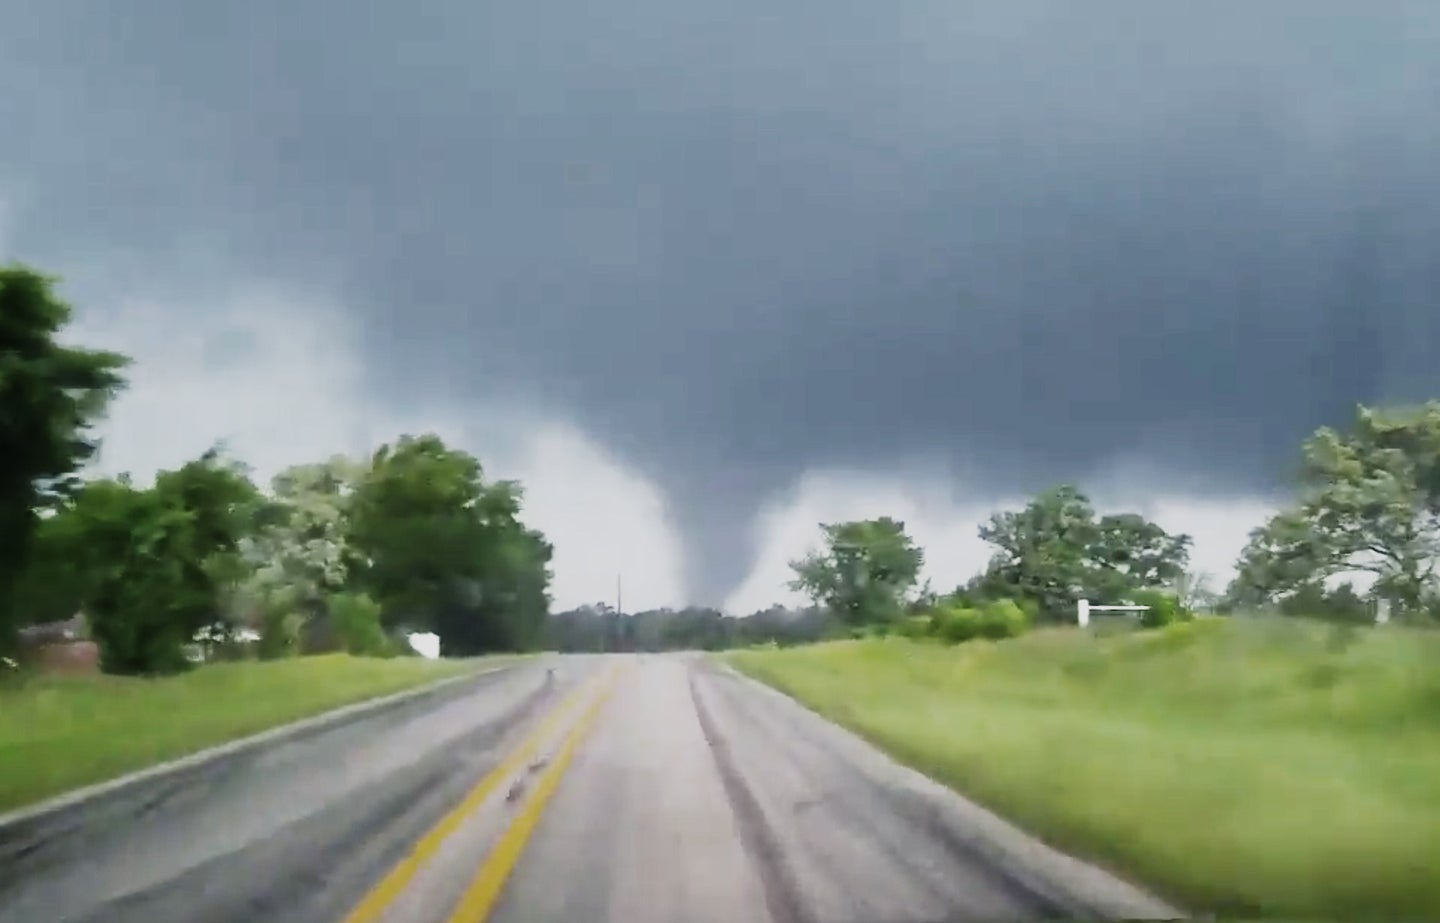 Everything you need to know about the tornadoes (and blizzards) that struck this weekend